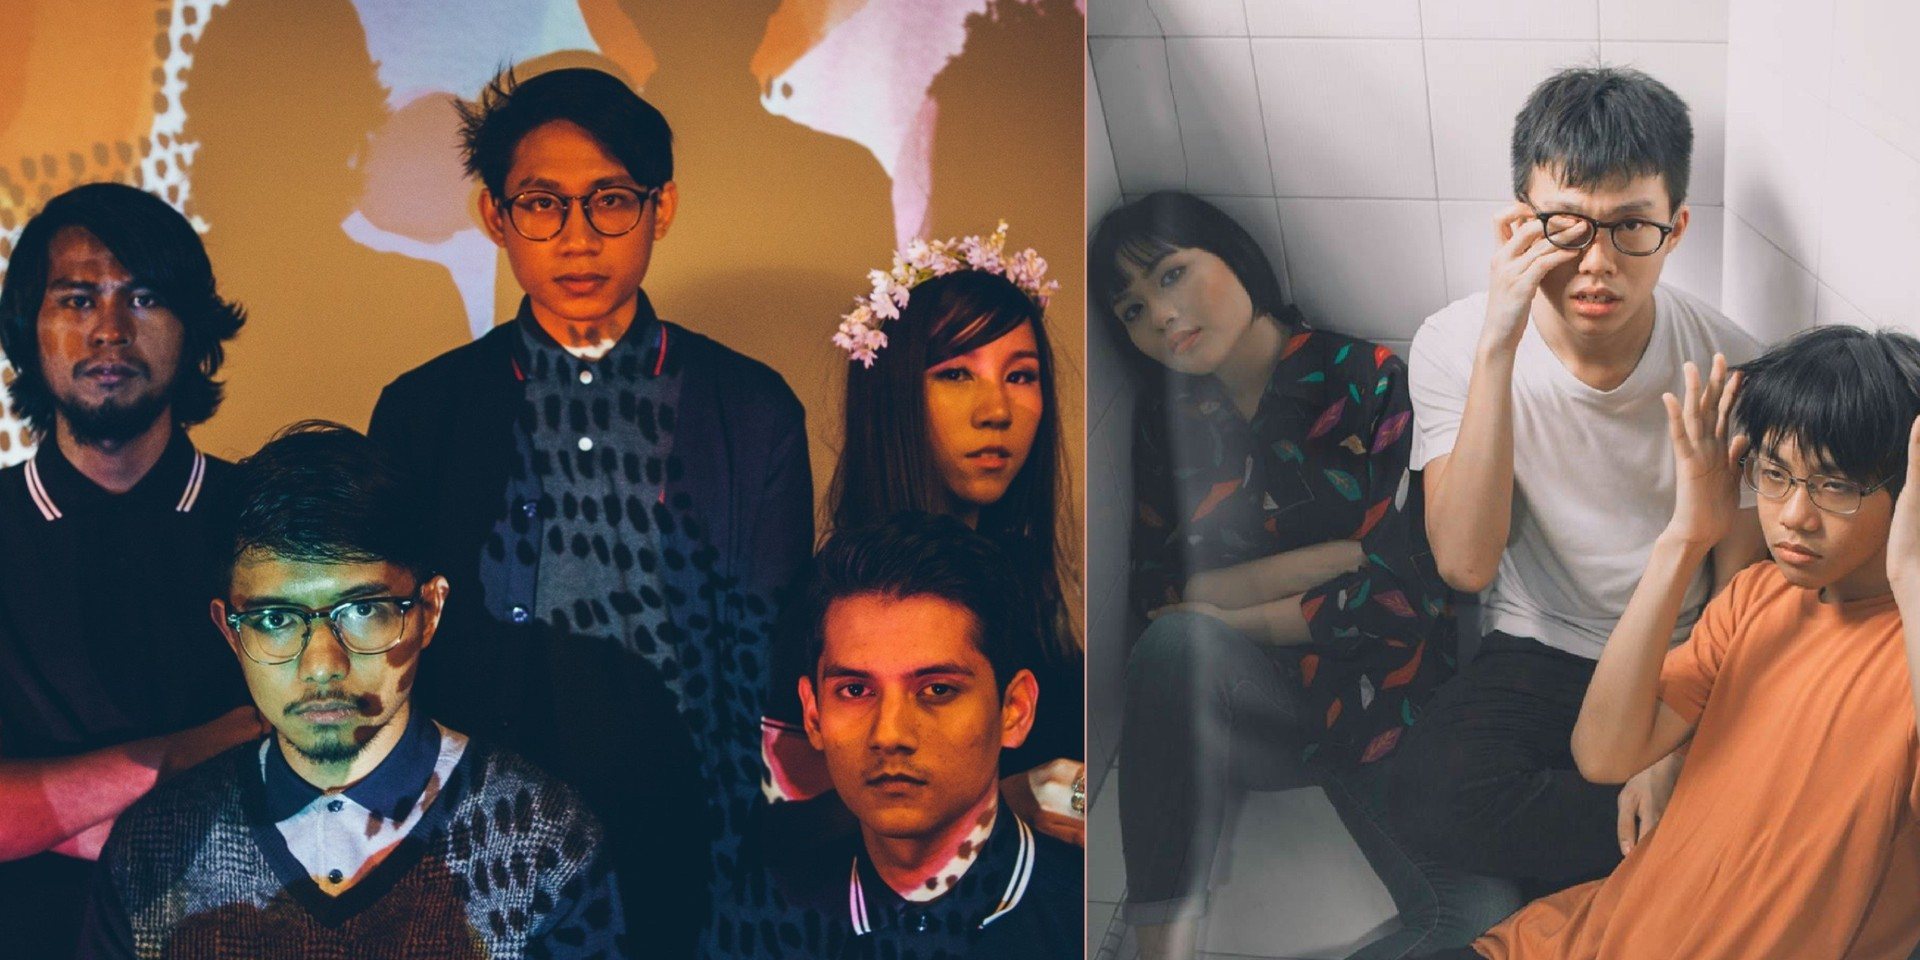 Pleasantry, Sobs, Cosmic Child and more to perform at Another Party: From Middle Class Cigars this weekend